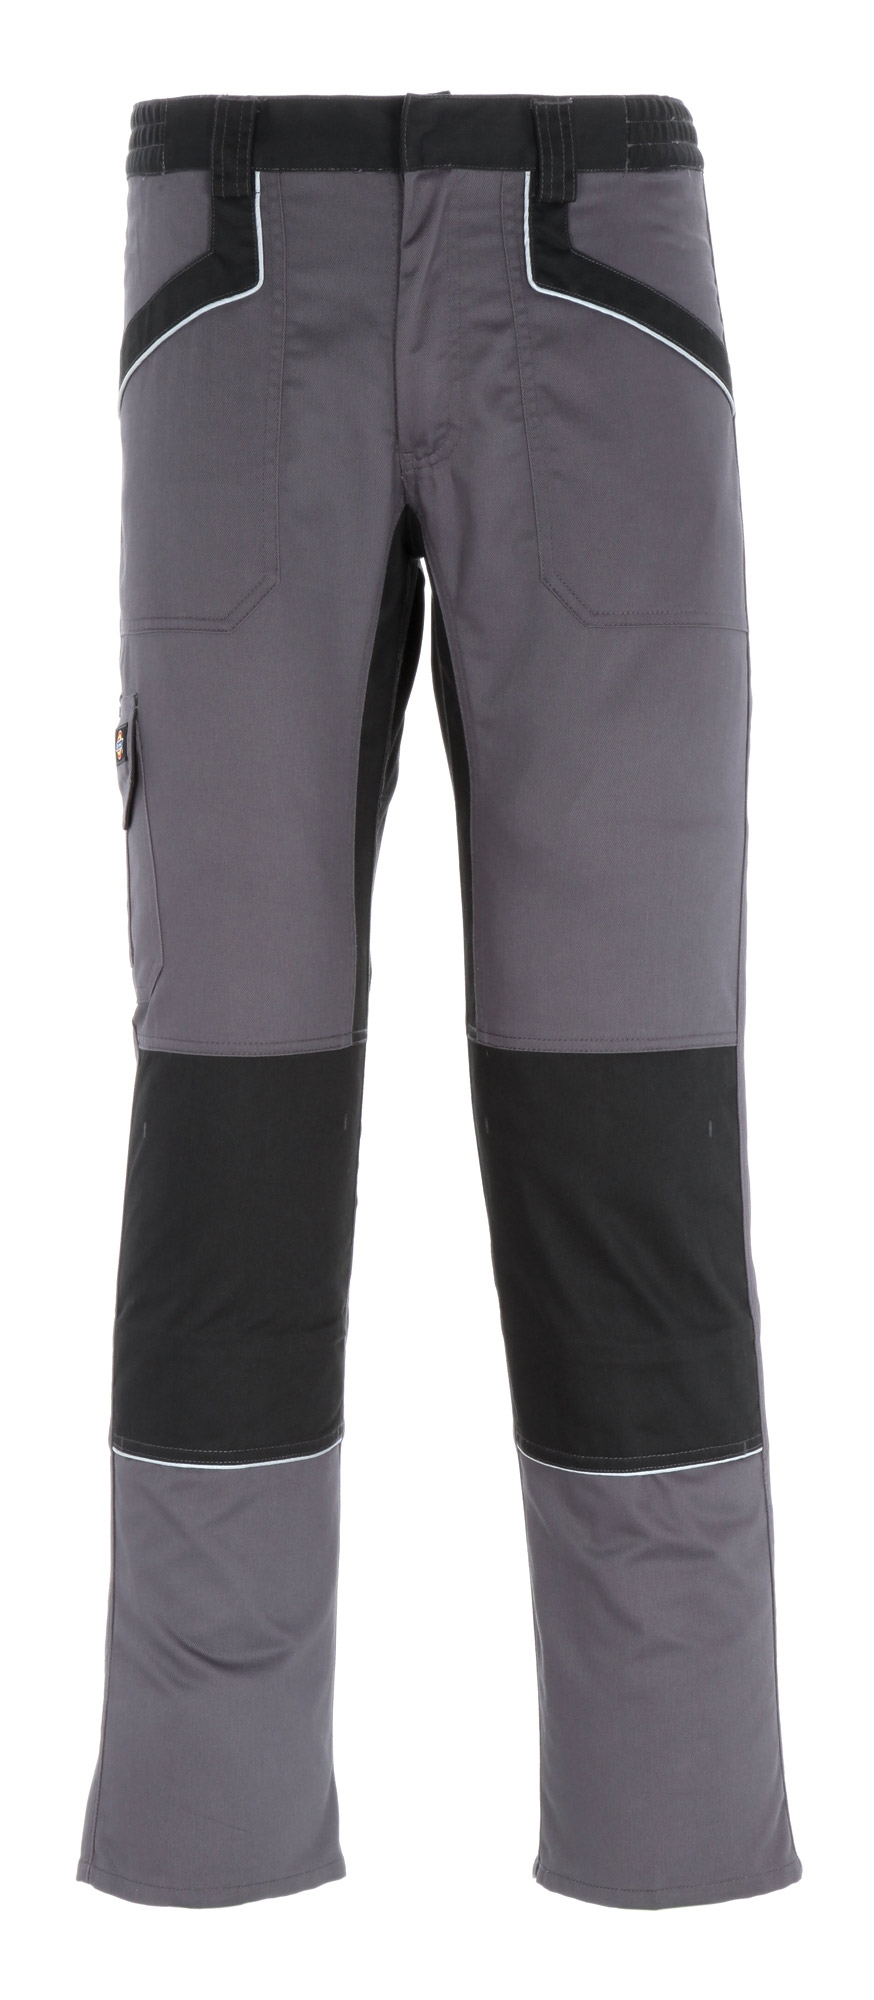 IND260 Trousers Grey/Black 46